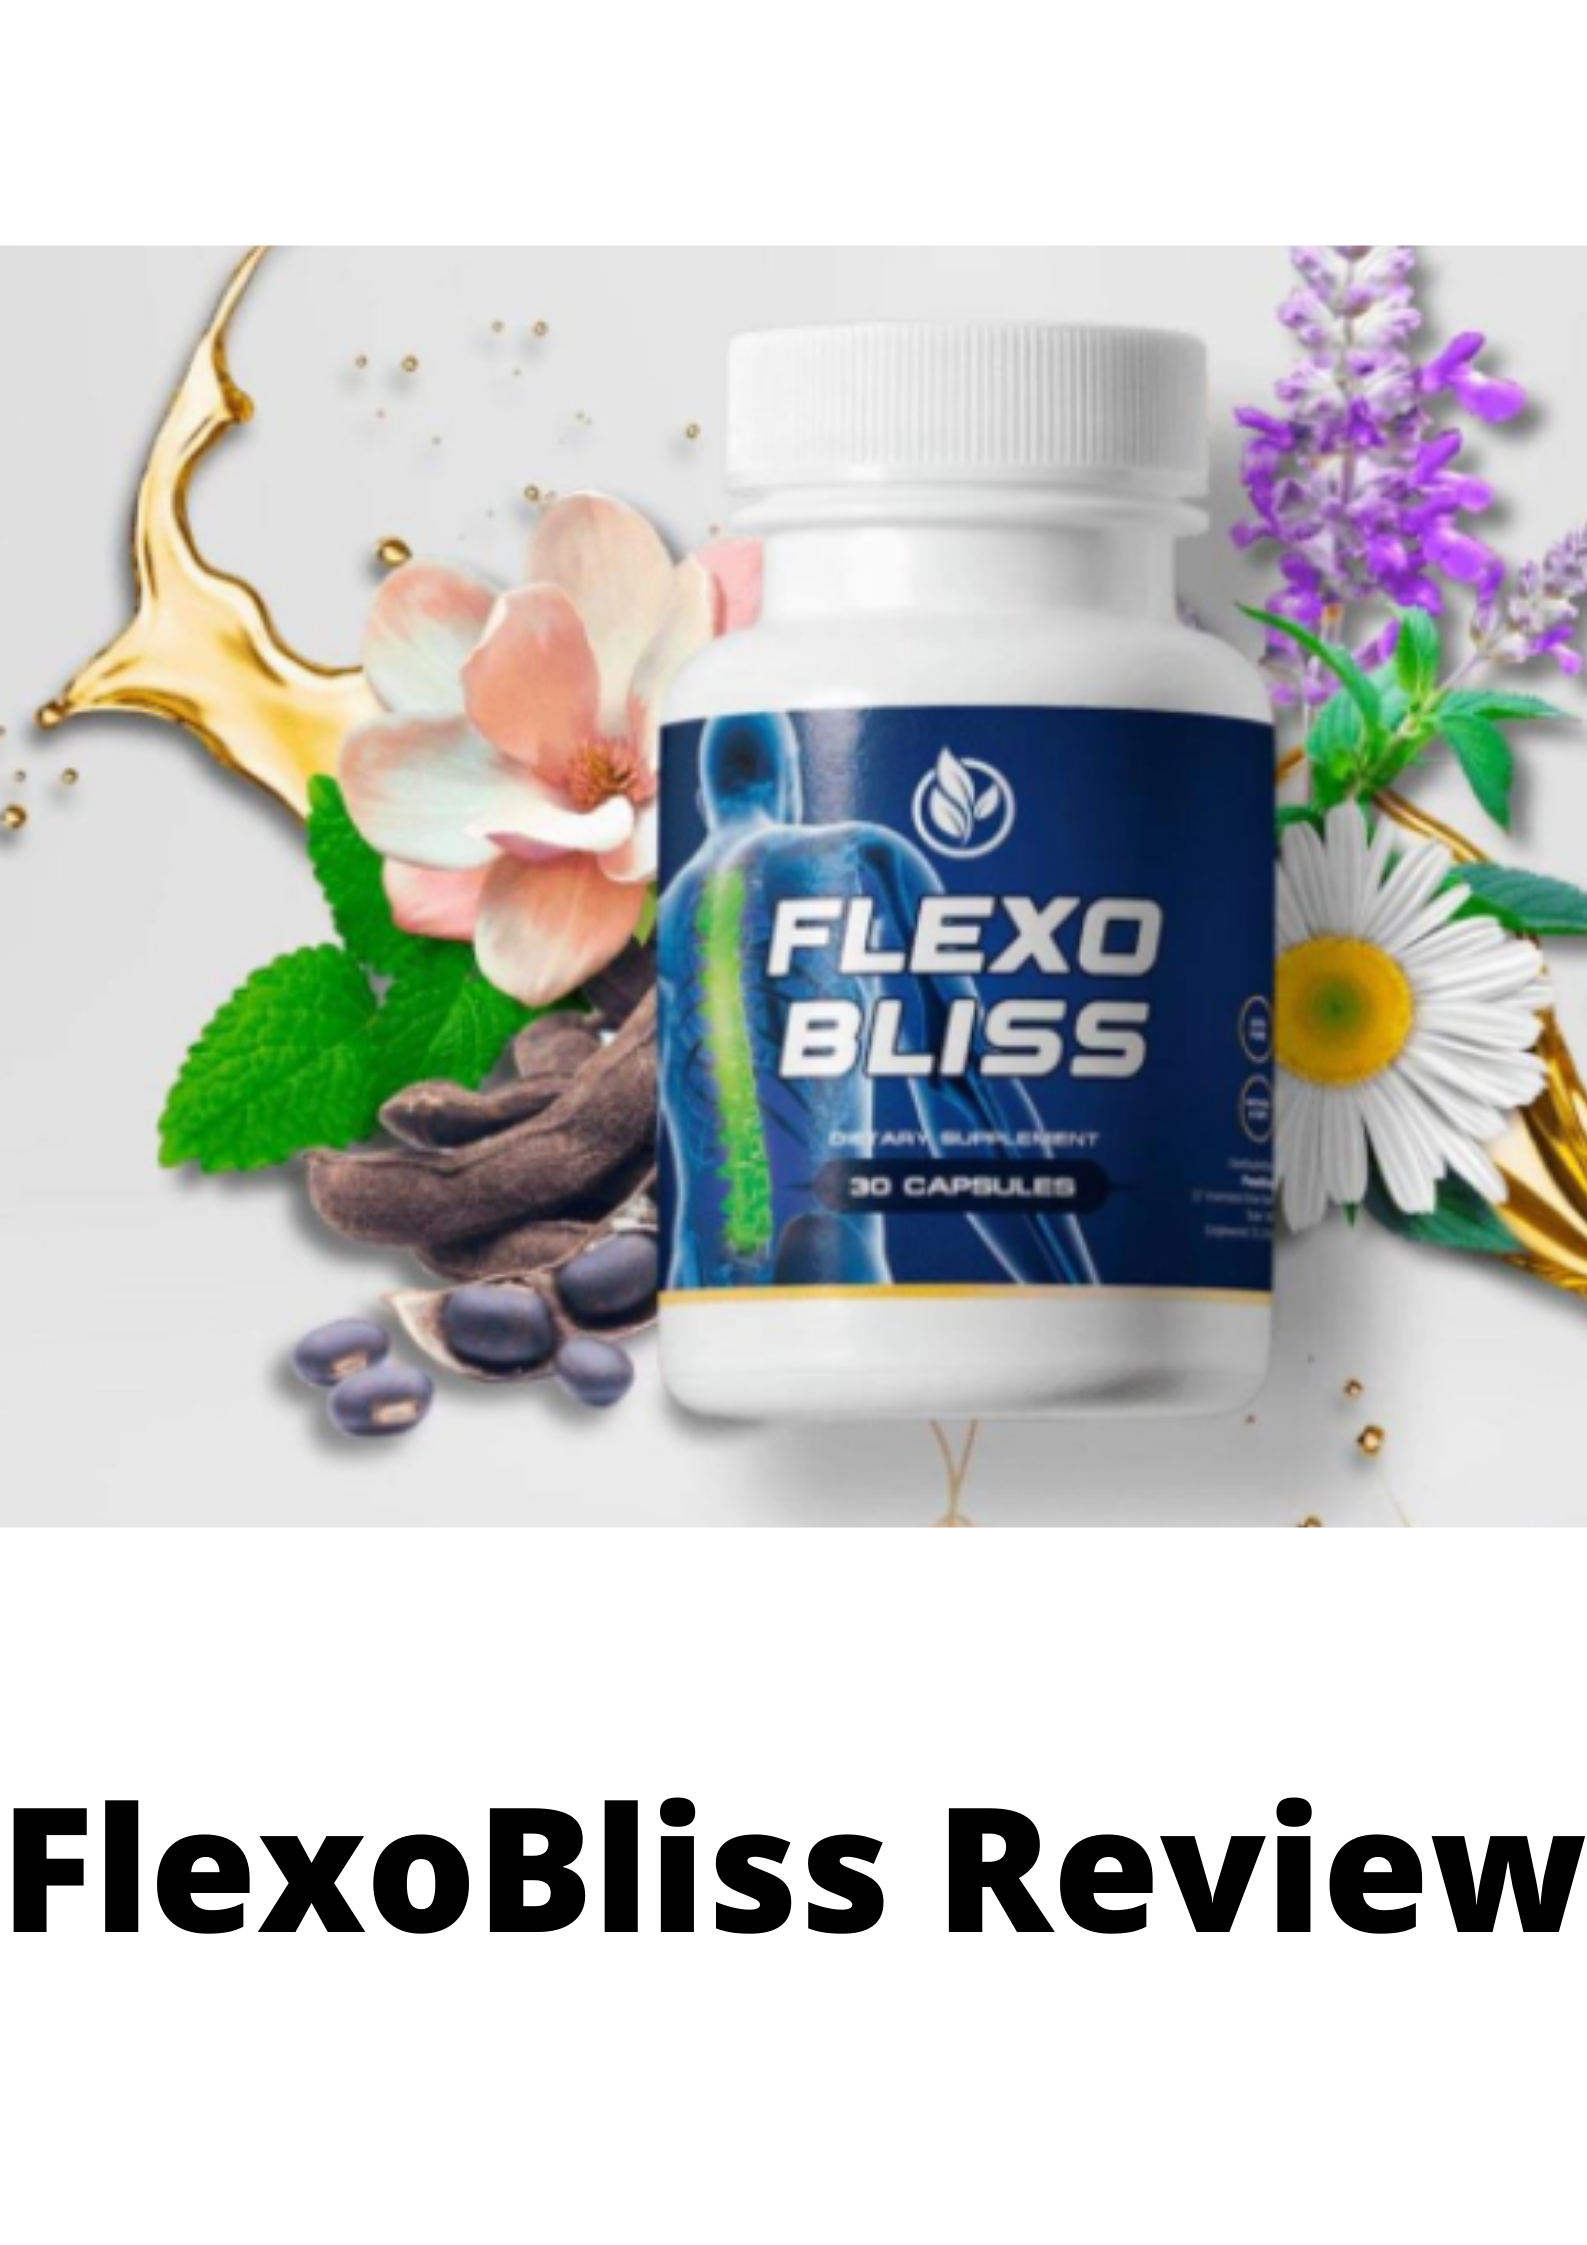 FlexoBliss Review-This is simply a scam